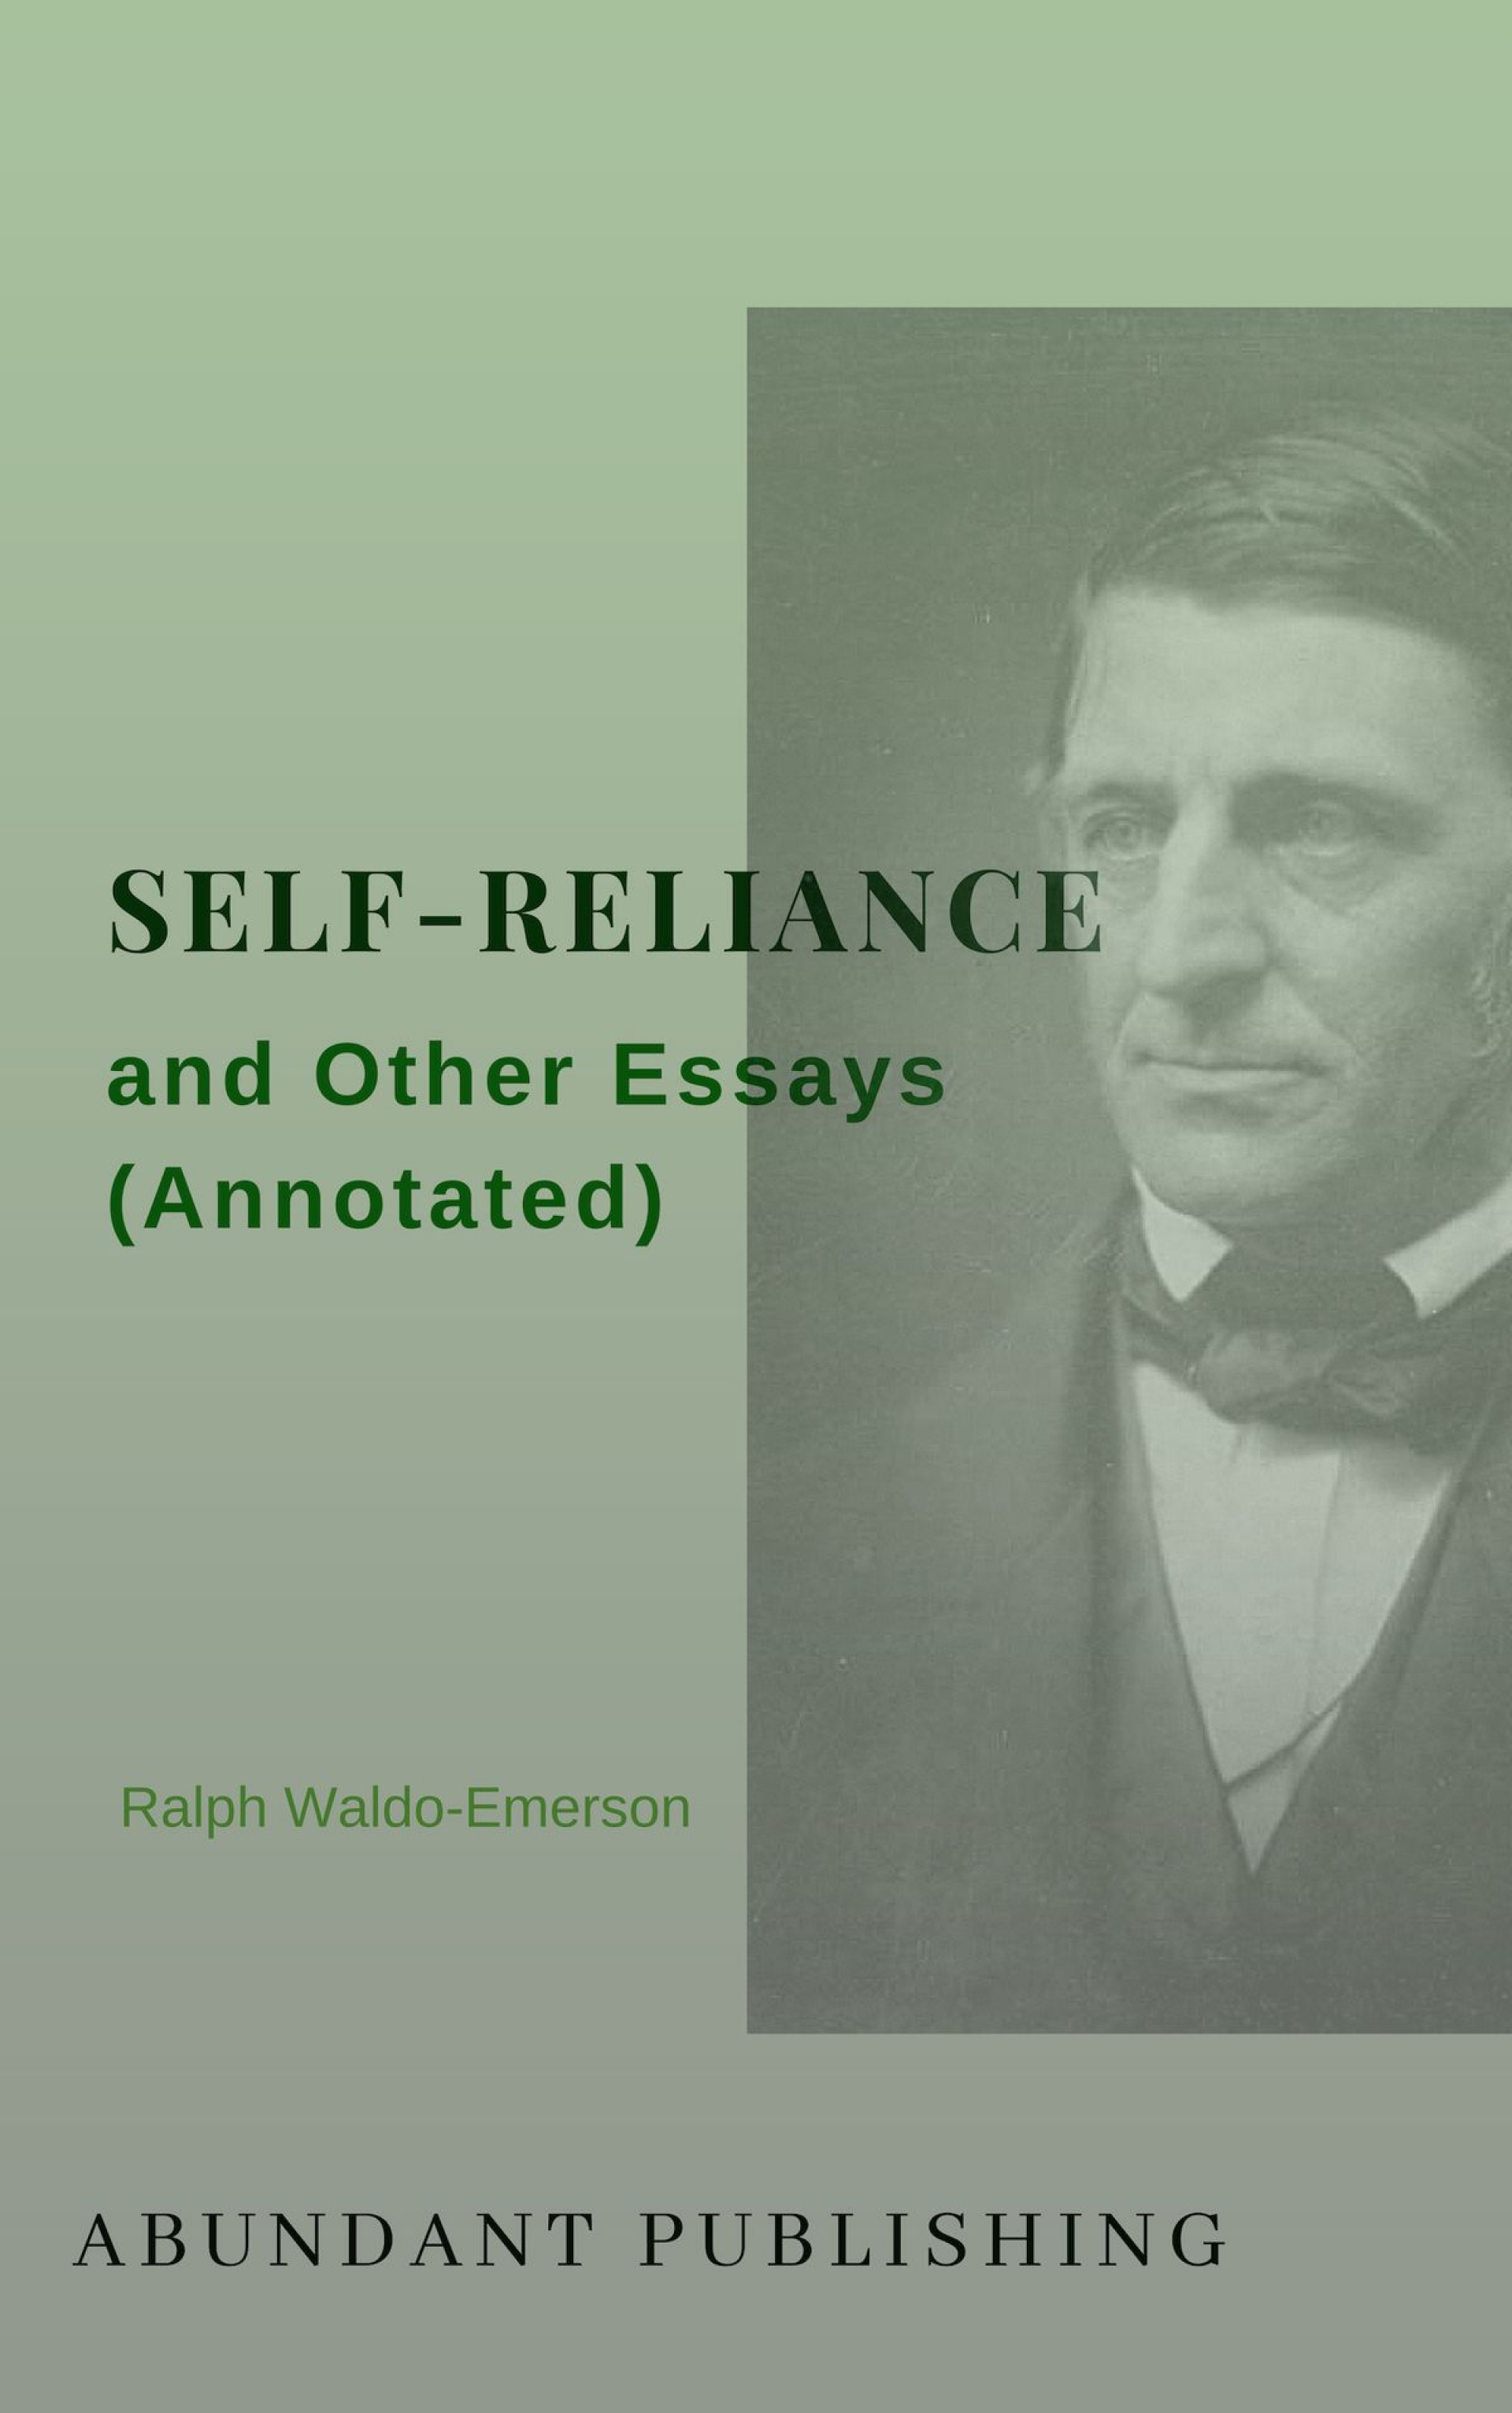 005 Self Reliance And Other Essays Annotated Essay Formidable Ekşi Self-reliance (dover Thrift Editions) Pdf Epub 1920